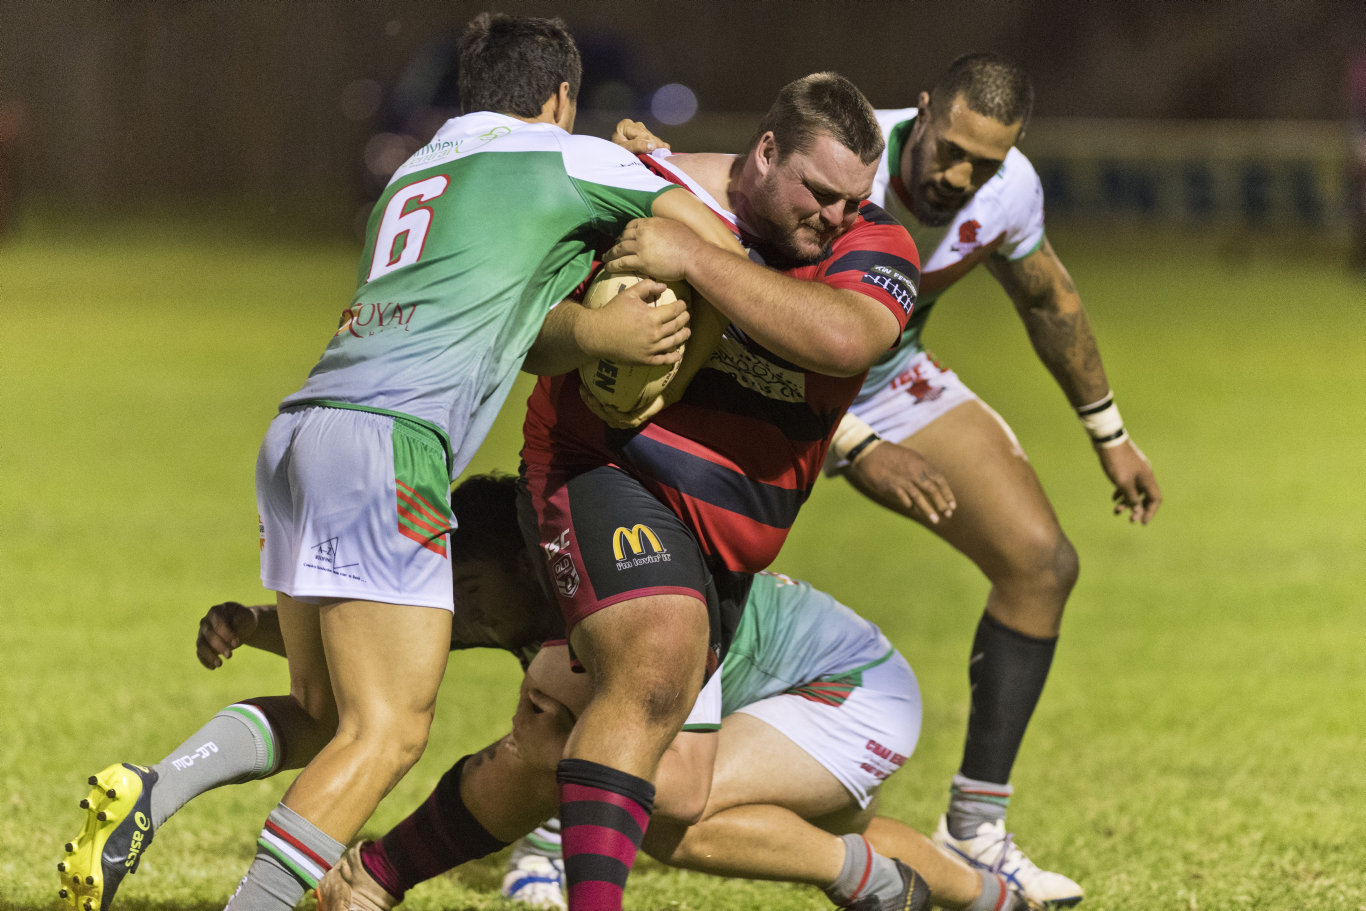 Josh Mason of Valleys against Beenleigh in a pre-season trial rugby league match at Herb Steinohrt oval, Saturday, February 22, 2020. Picture: Kevin Farmer